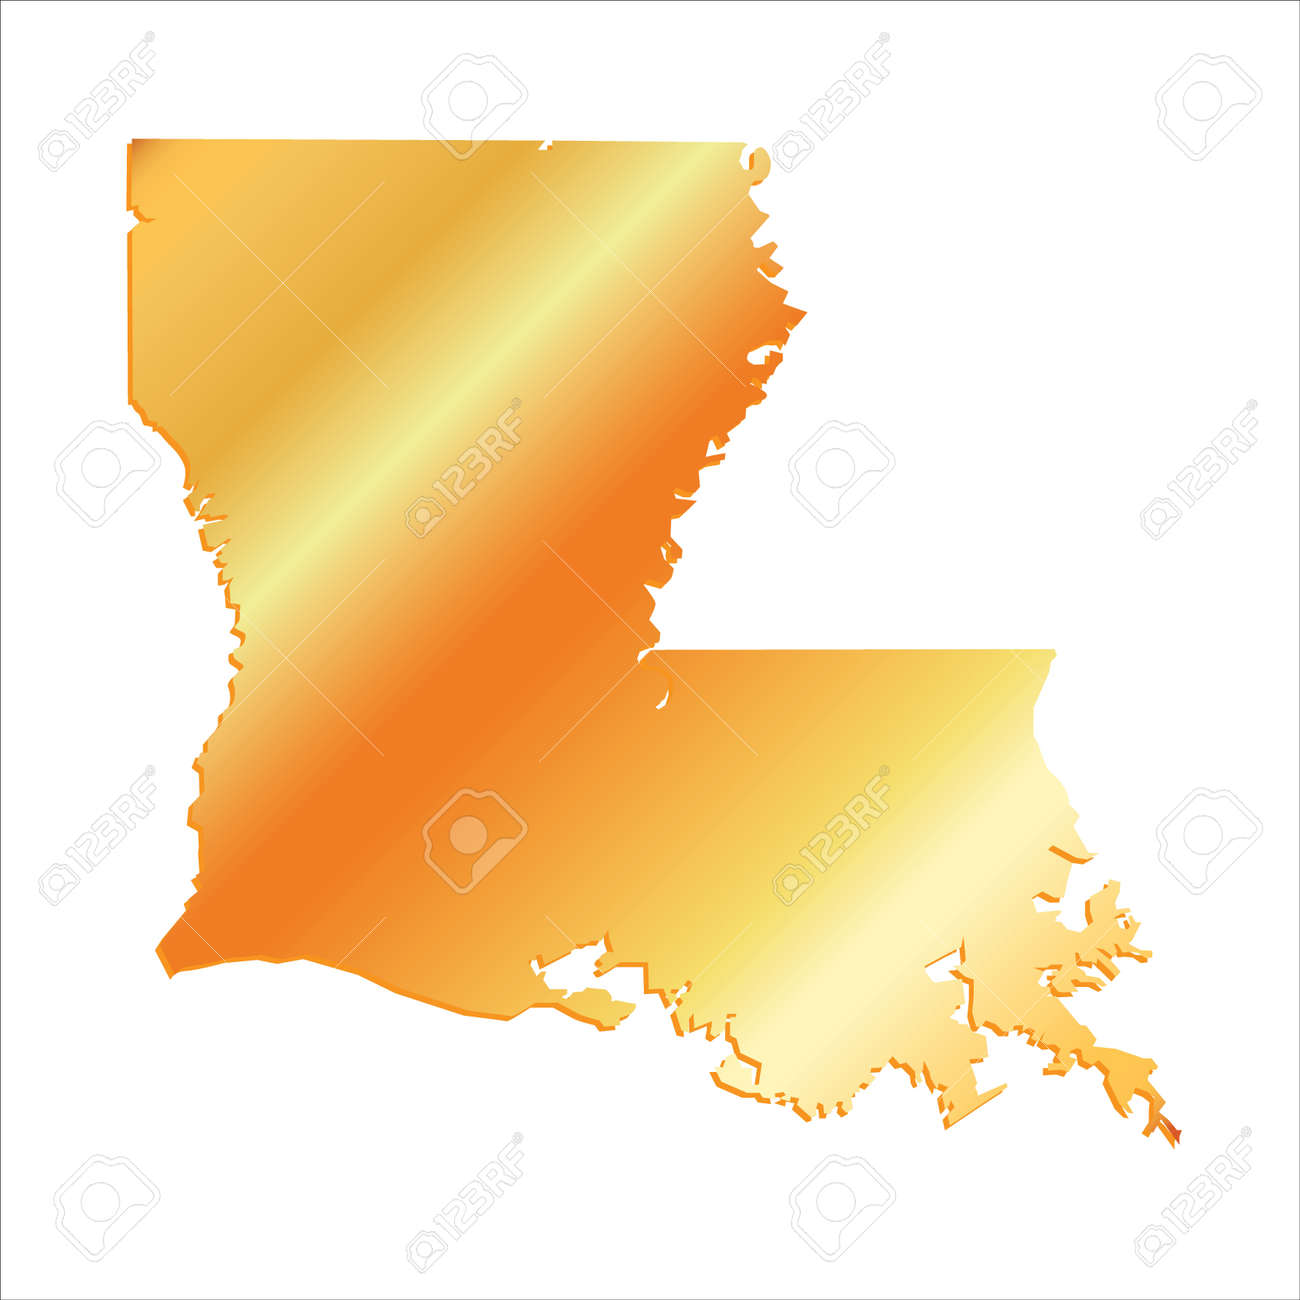 D Louisiana Usa Gold Outline Map With Shadow Royalty Free Usa Map Louisiana